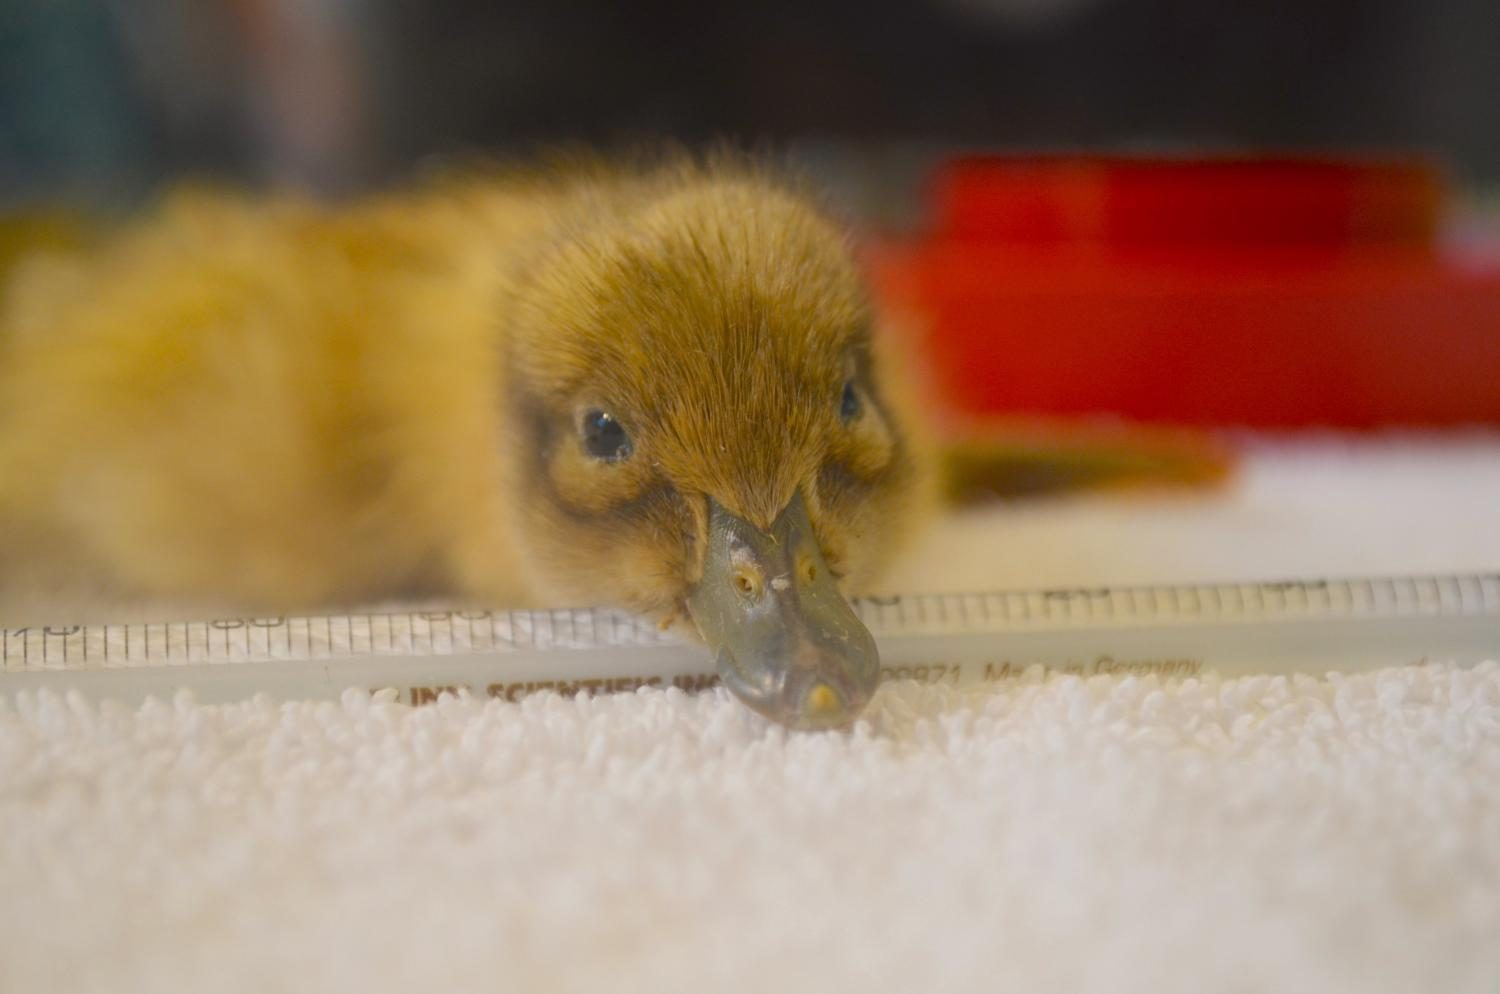 A duck from last year's hatching season.